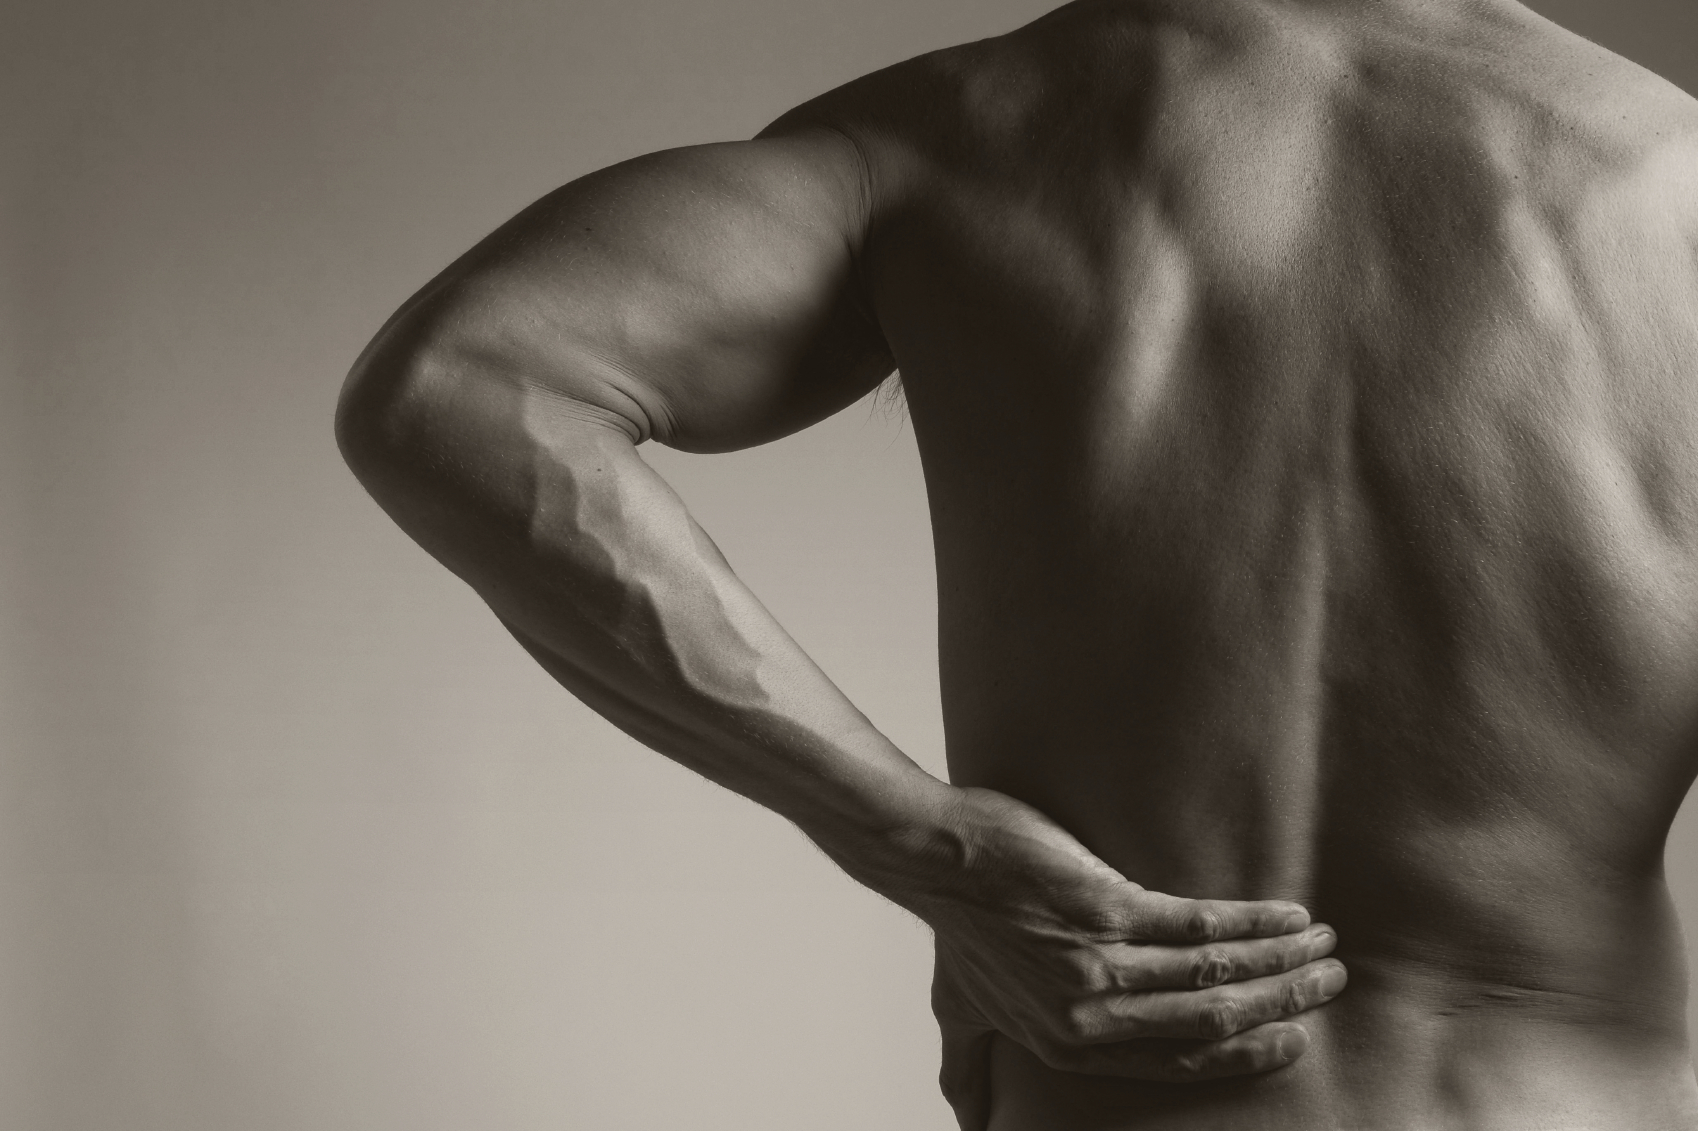 It's the top cause of disability across the world... Even mild, lingering back pain can control your life. Here are five ways to help ease lower back pain.